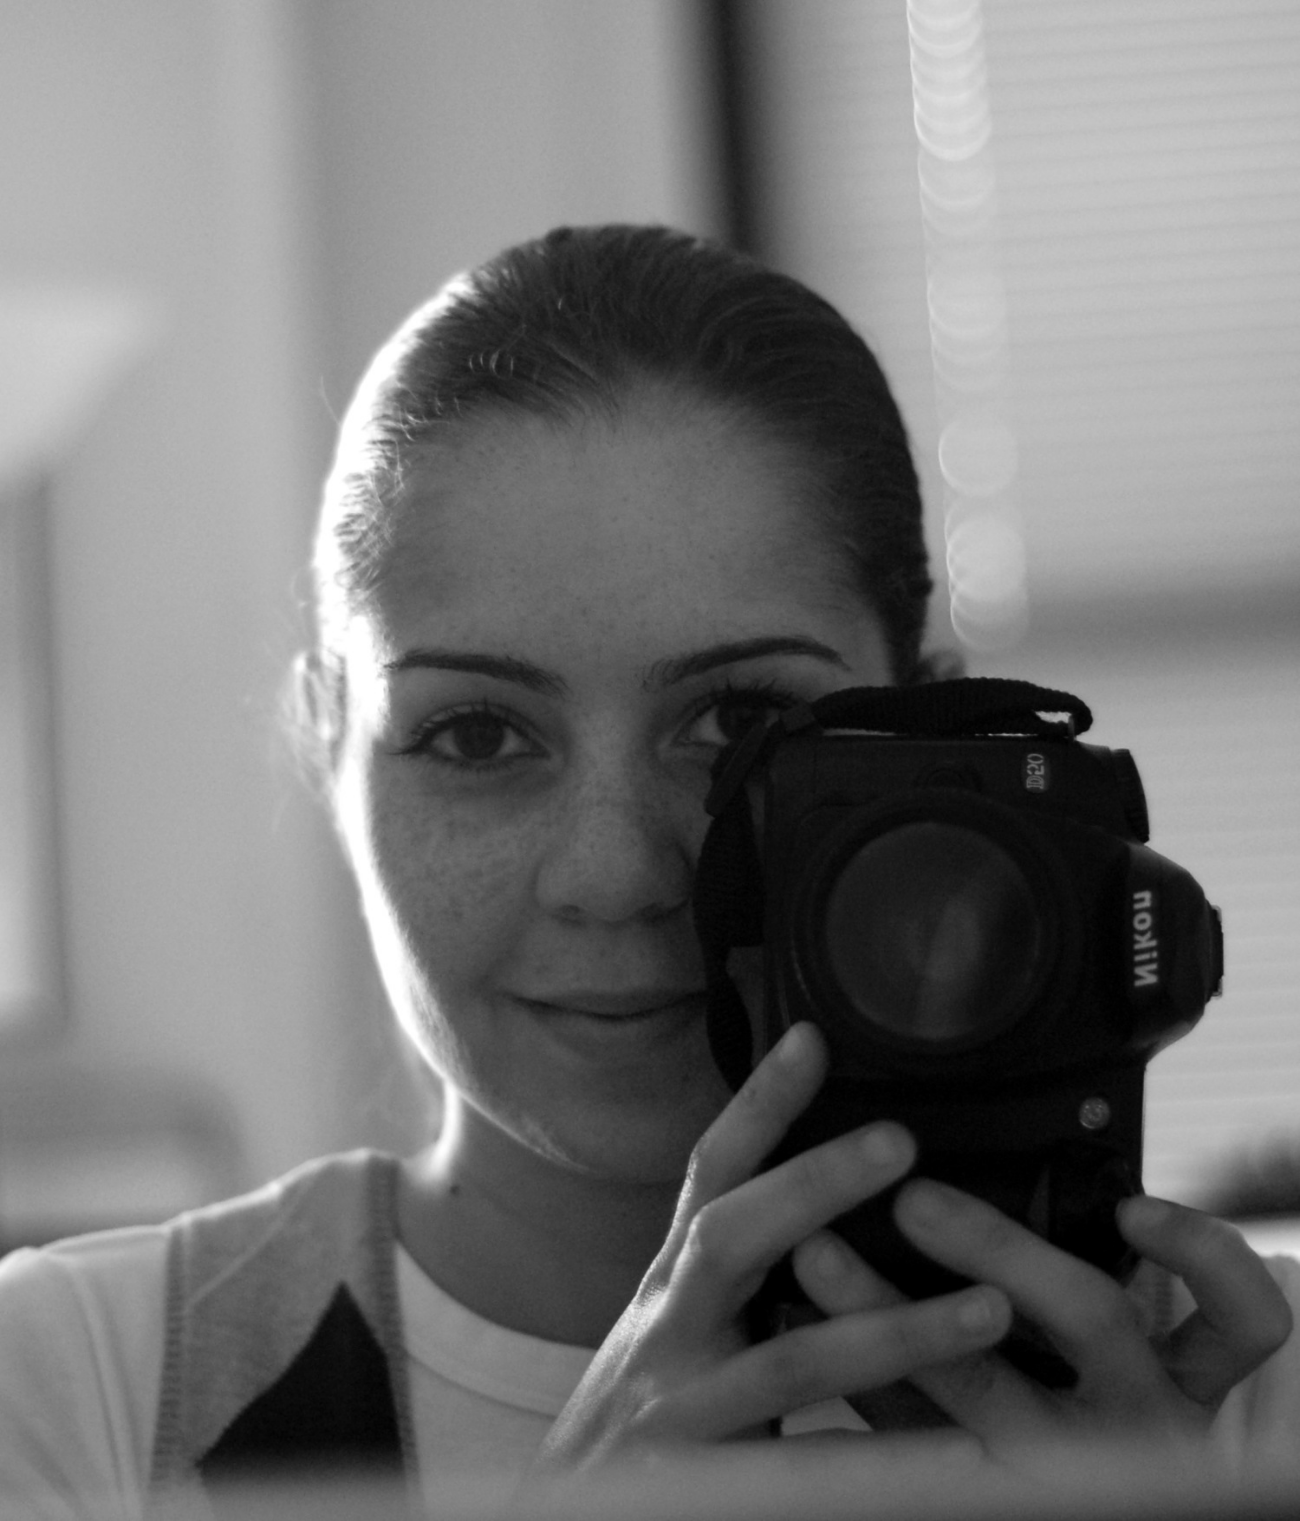 ~2005, with my first DSLR.